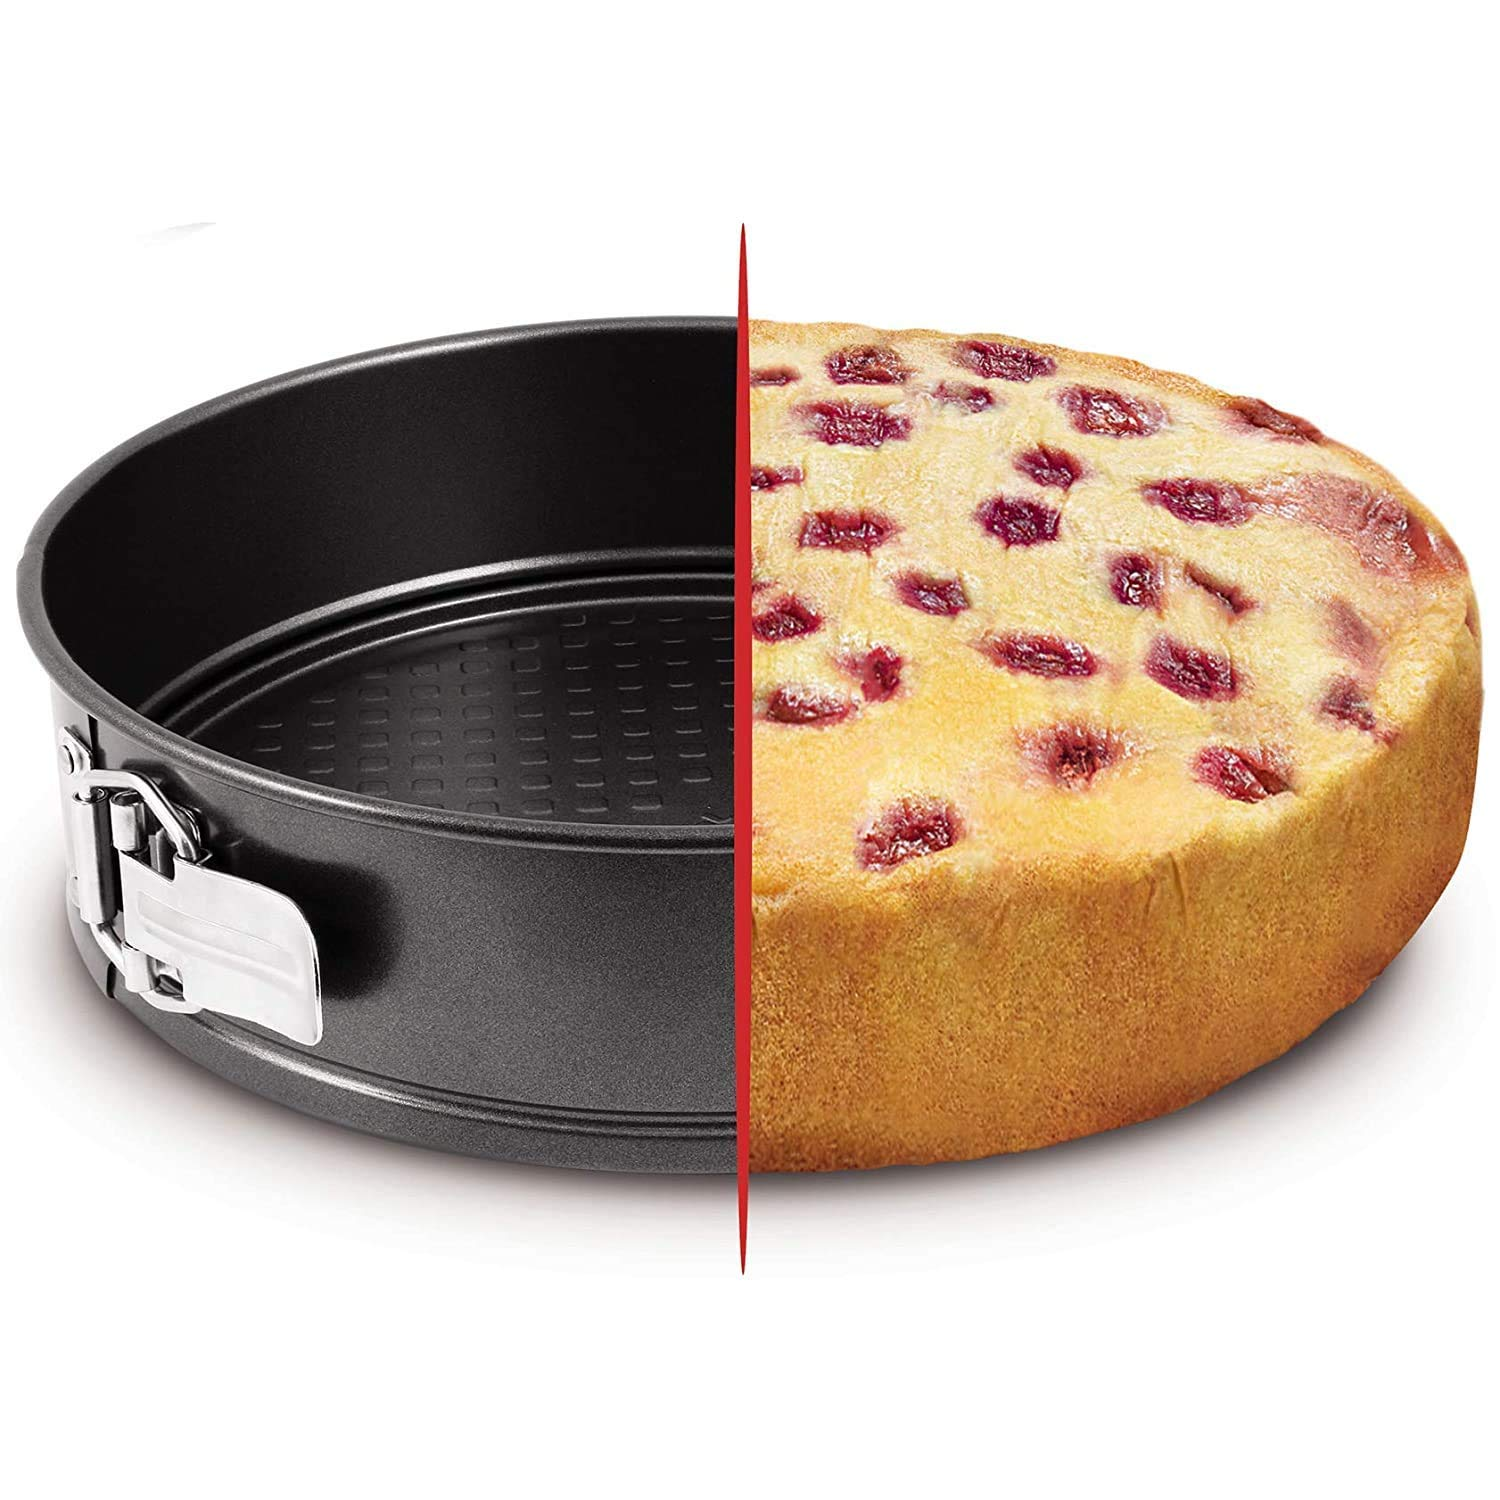 CROWEX Teflon Round Cheese Cake Mould, Cooker with Removable Base, Non-Stick Cake Tins/Pan/Trays for Microwave, Oven and Bakeware, Black (19 cm)